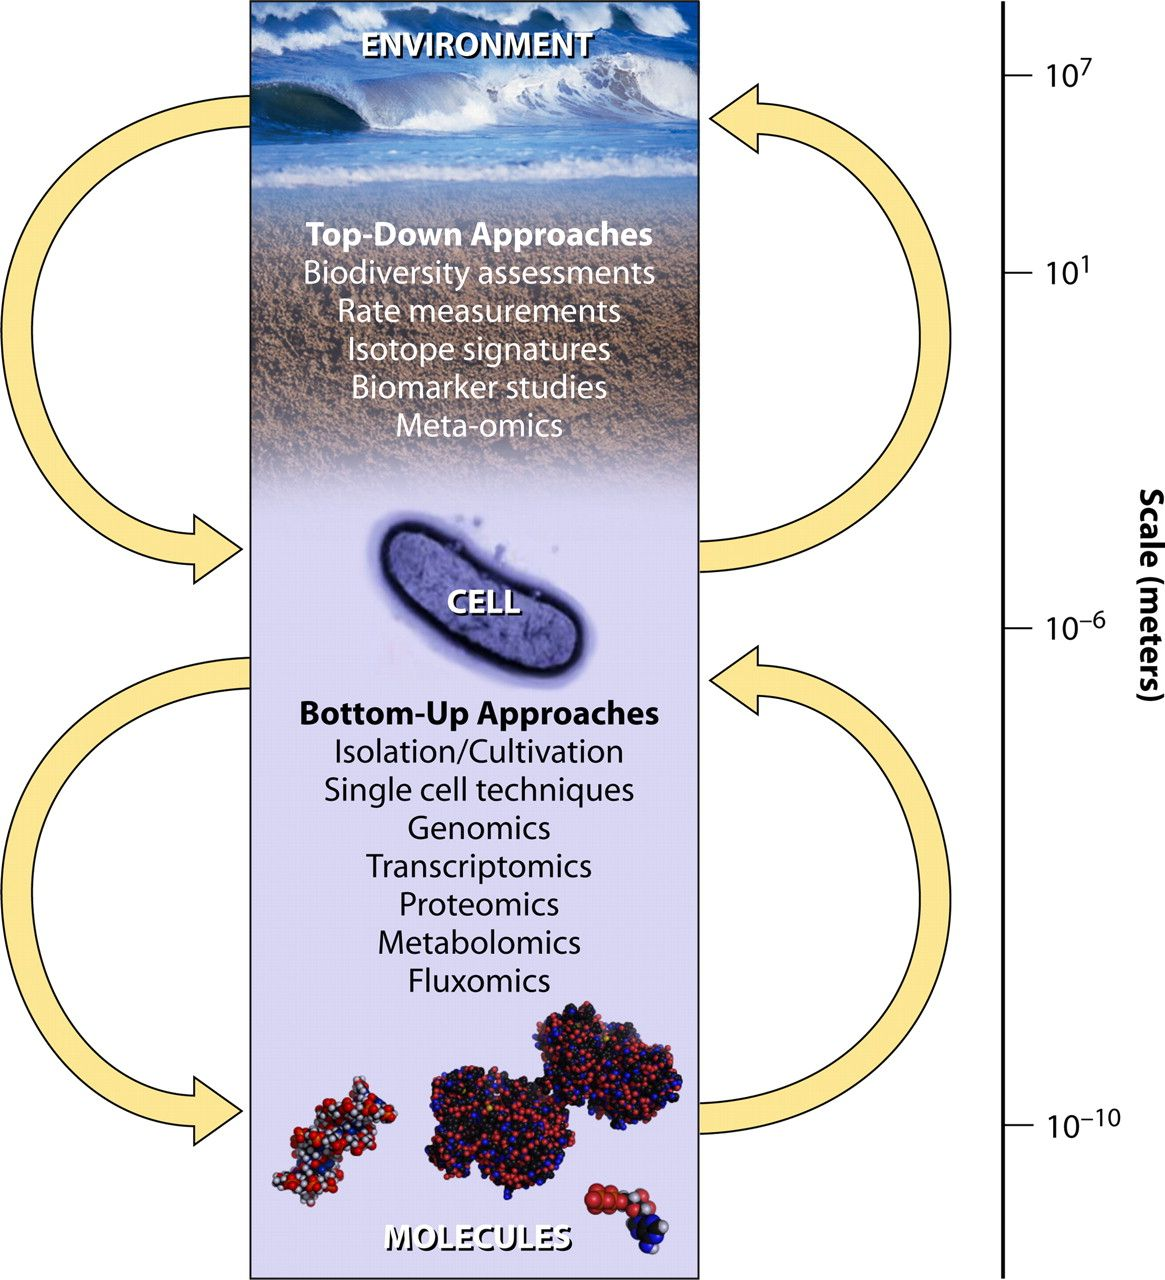 """Top-down and  bottom-up approaches in microbial ecology, spanning orders of magnitude in spatial resolution. Top-down approaches (including but not limited to biodiversity assessments, rate measurements, isotope signature determination, and various """"-omics"""" studies) utilize data sets which are in general not organism (individual) specific. Interpretation of these data often relies on previous knowledge (e.g., in the form of a molecular biology database). Bottom-up approaches (e.g., cultivation or single-cell techniques and various """"-omics"""" methods) focus on single organisms. Knowledge gained by studying individual organisms or defined communities is consequently extrapolated to larger communities and the environment. Both concepts have advantages and limitations (see text) and are clearly dependent on the scientific goal."""